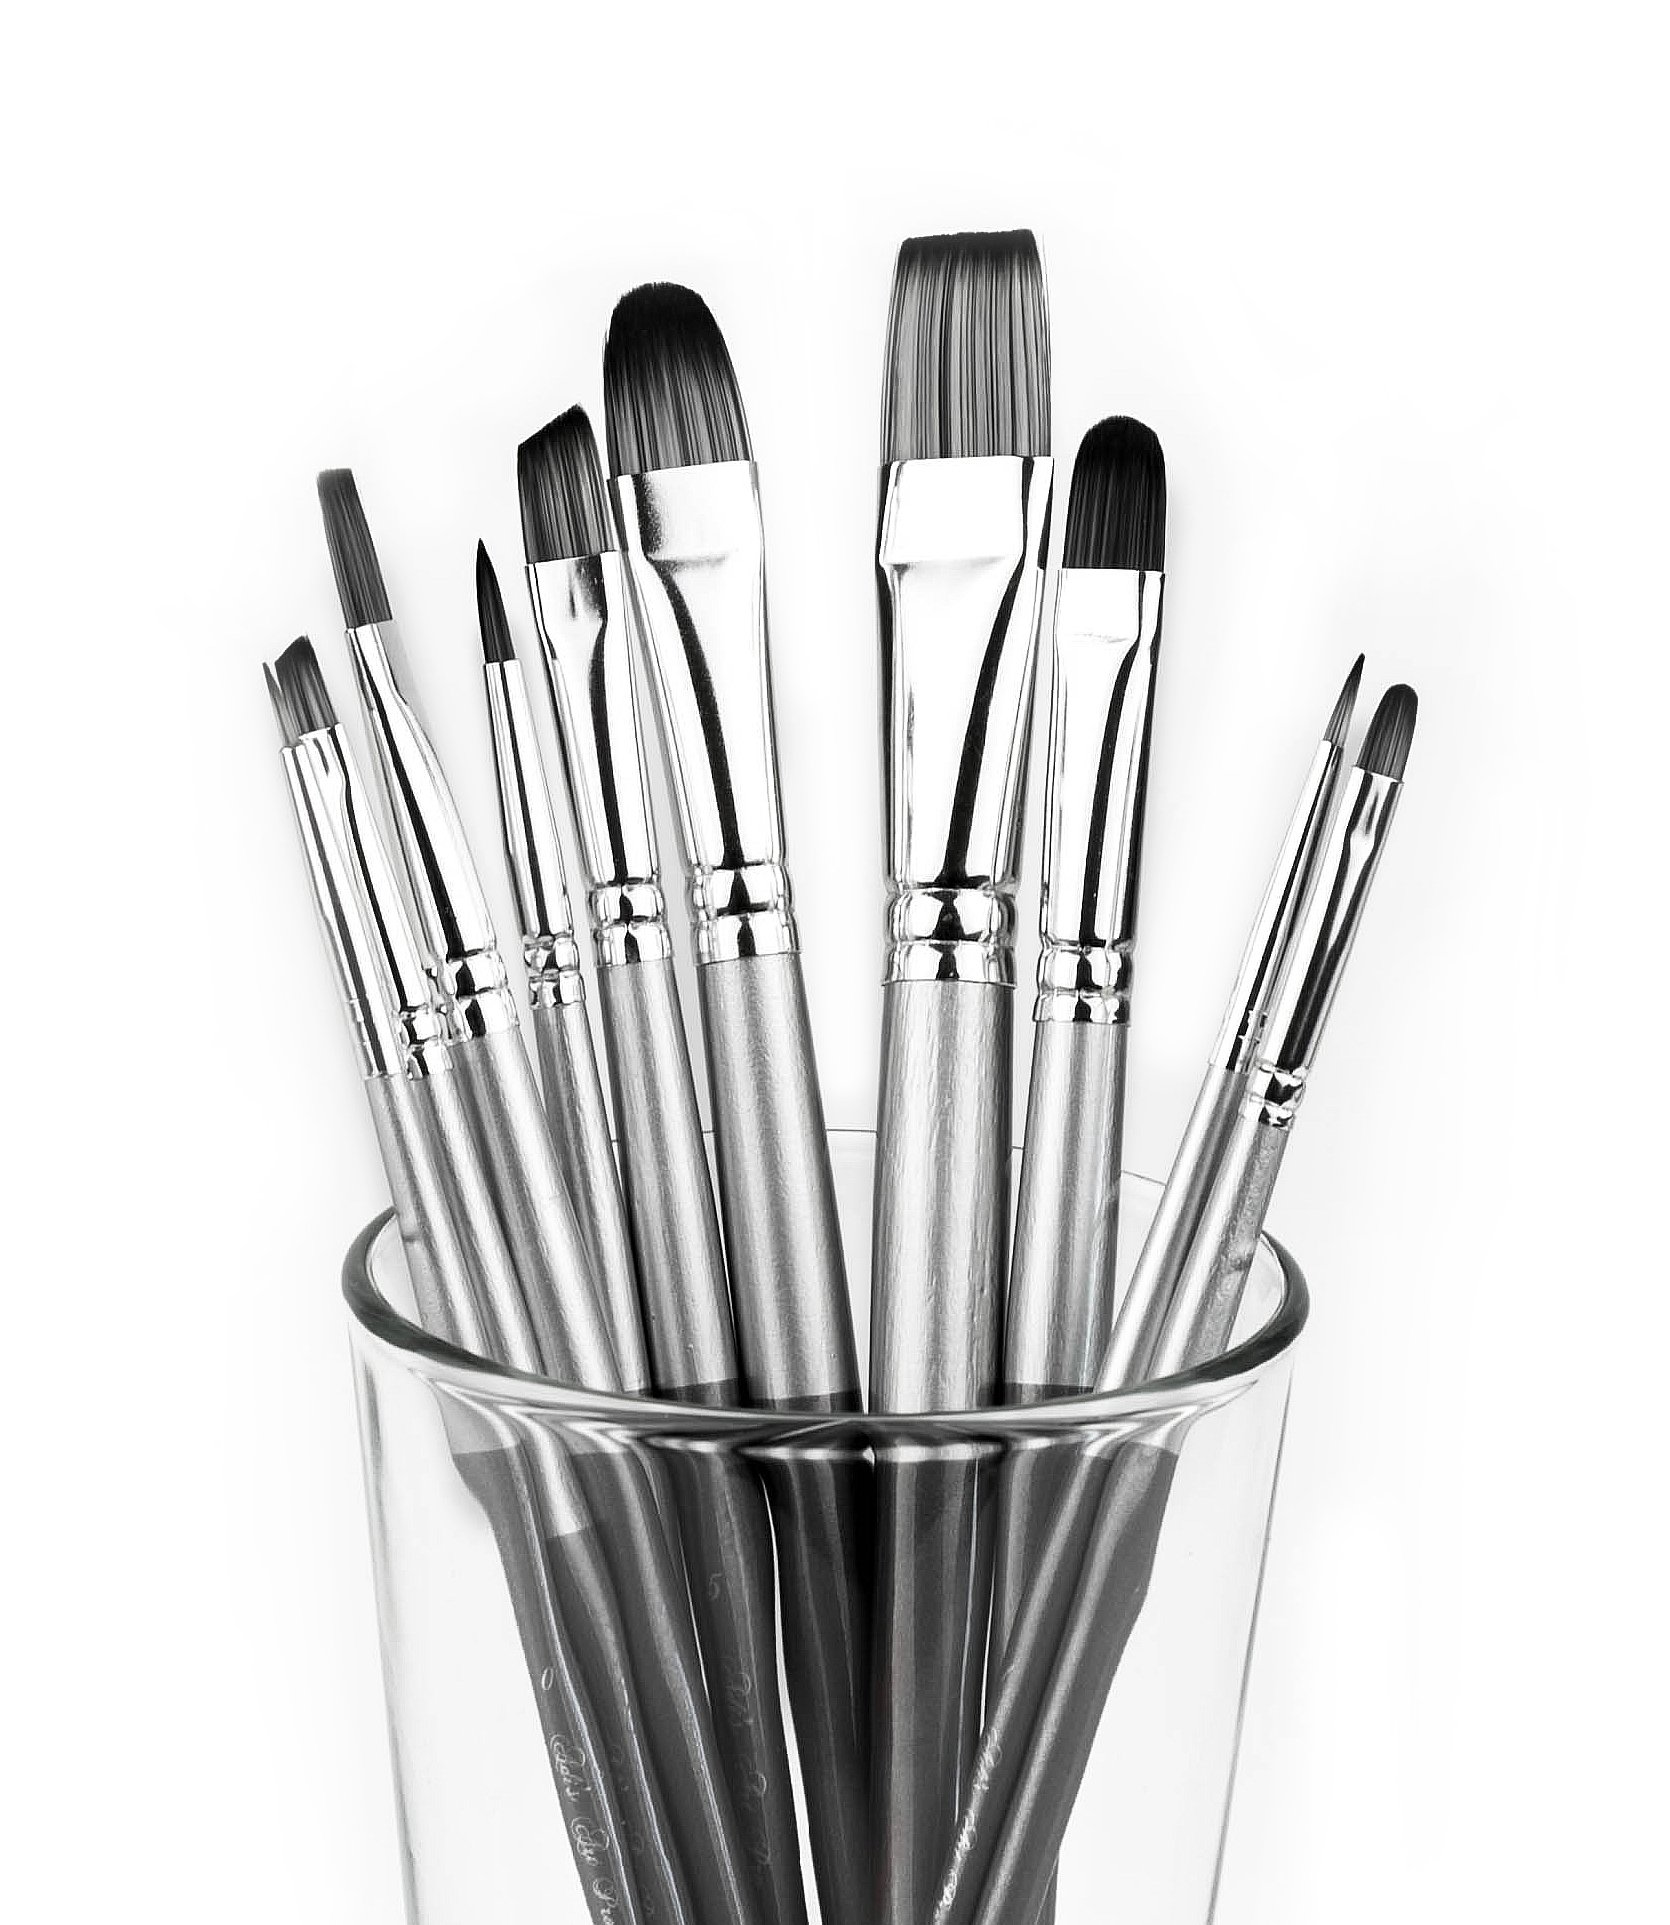 Adi's Art Pro Paint Brushes Set for Acrylic Oil Watercolor, Artist Face and Body Professional Painting Kits with Synthetic Nylon Tips, 10 Pieces (gray)